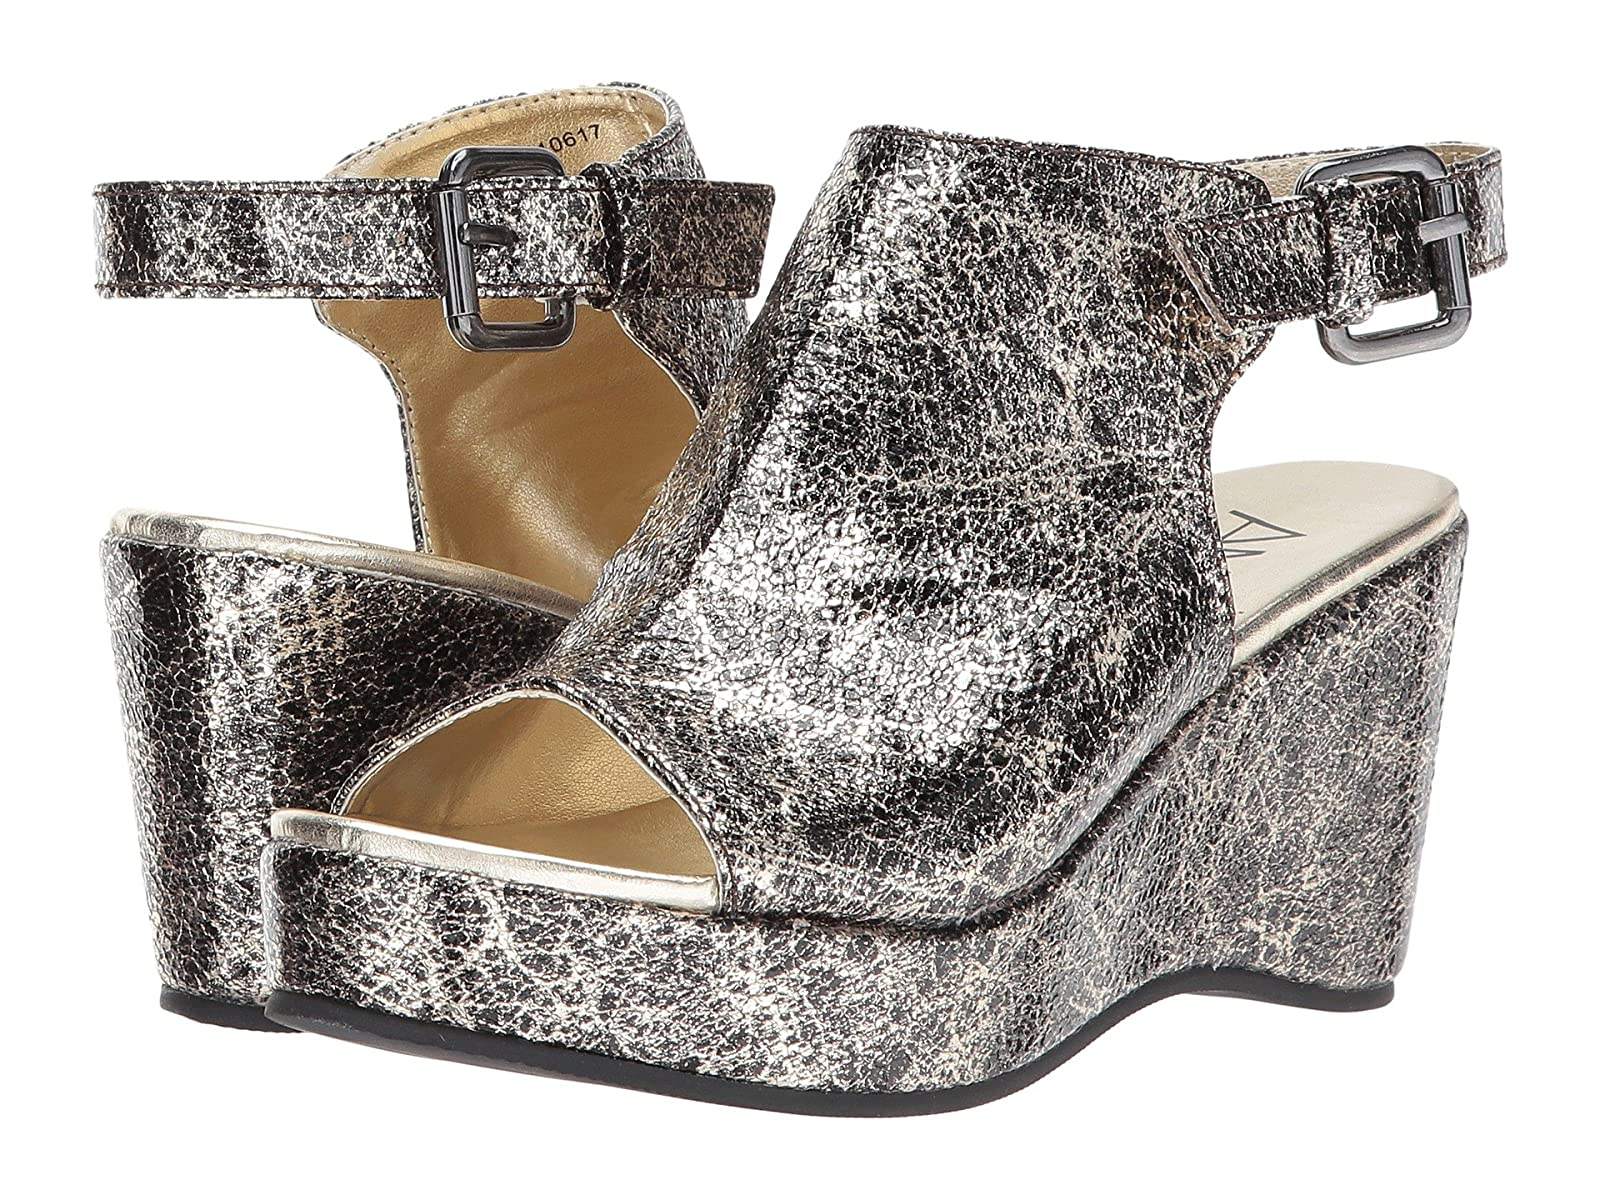 Amiana 15-A5441 (Little Kid/Big Kid/Adult)Cheap and distinctive eye-catching shoes